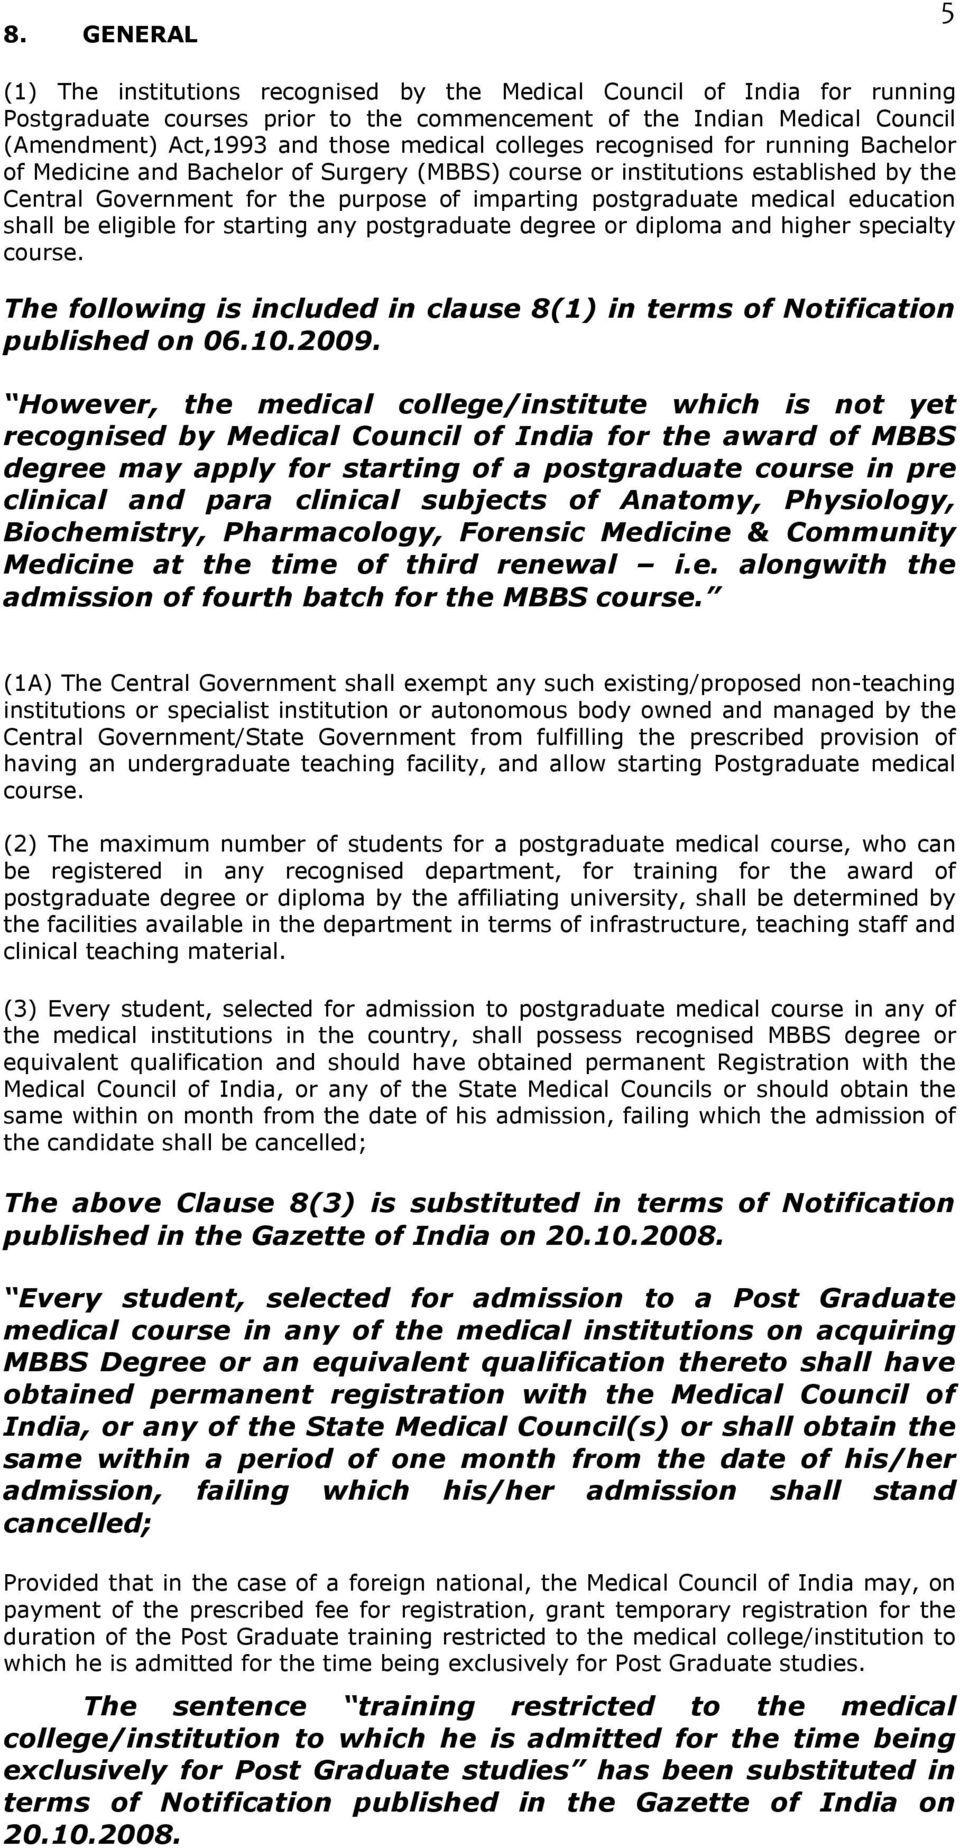 MEDICAL COUNCIL OF INDIA POSTGRADUATE MEDICAL EDUCATION